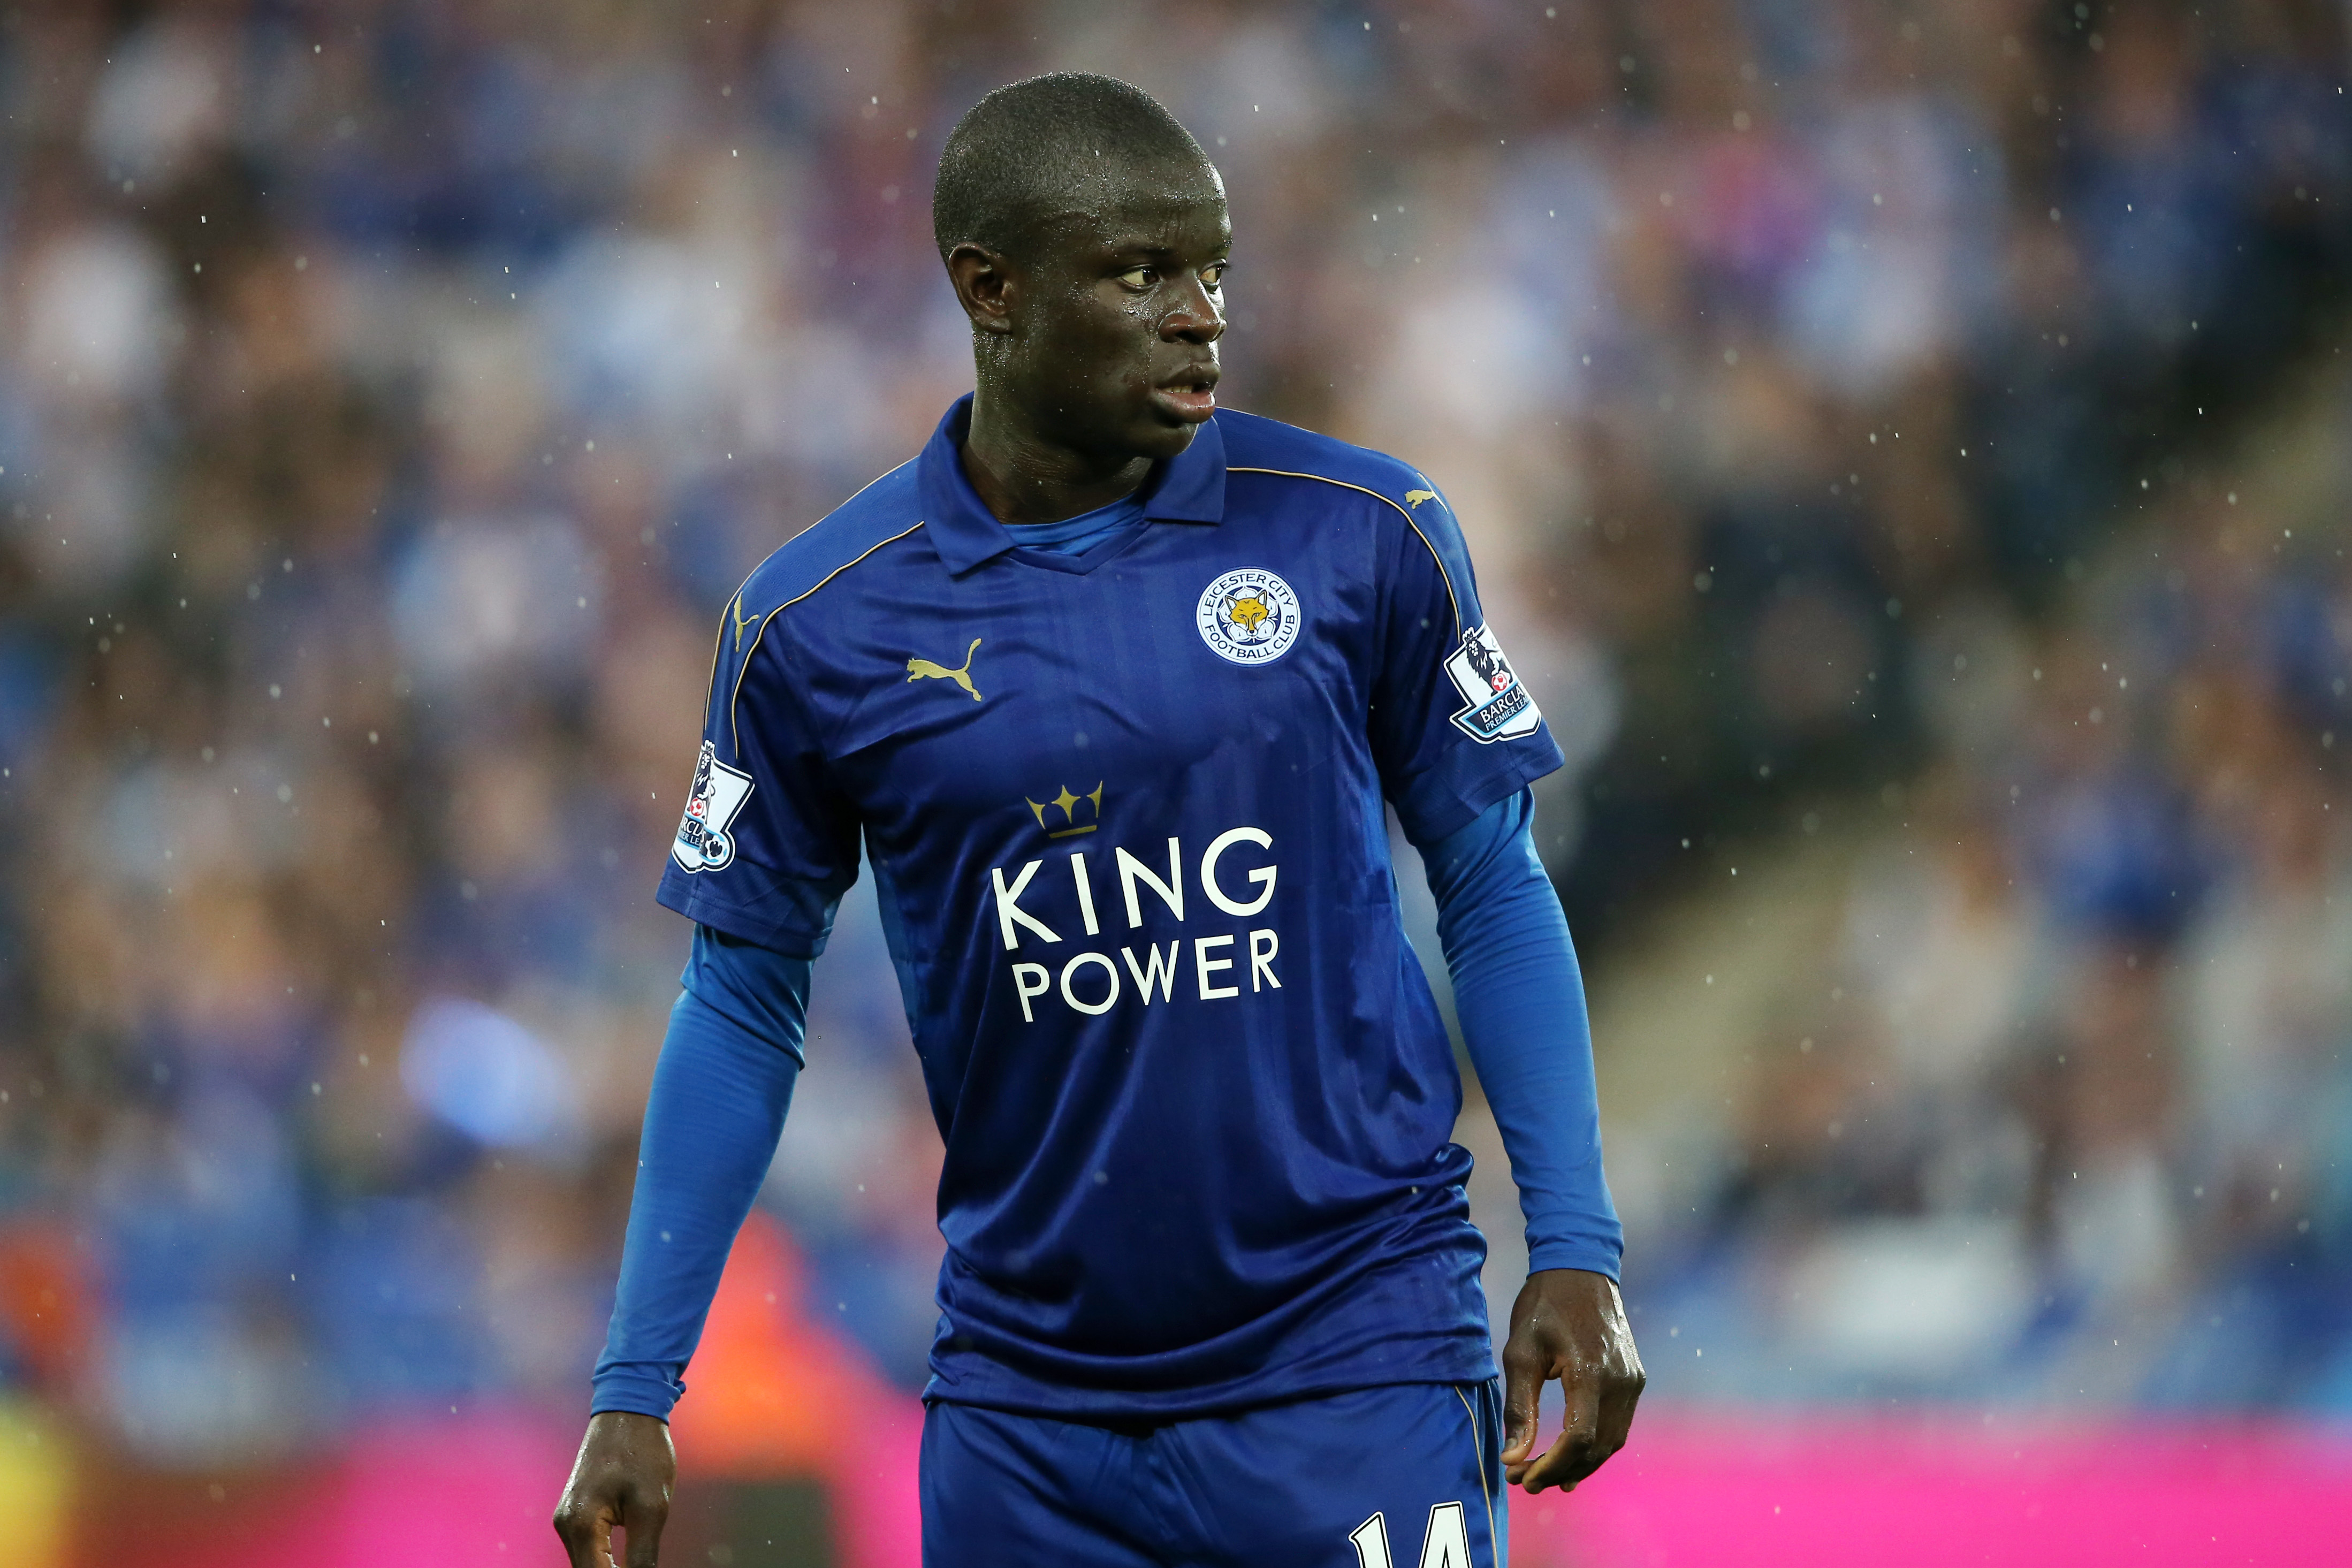 Why Arsenal should not try and sign Leicester City's N'Golo Kante in the summer transfer window